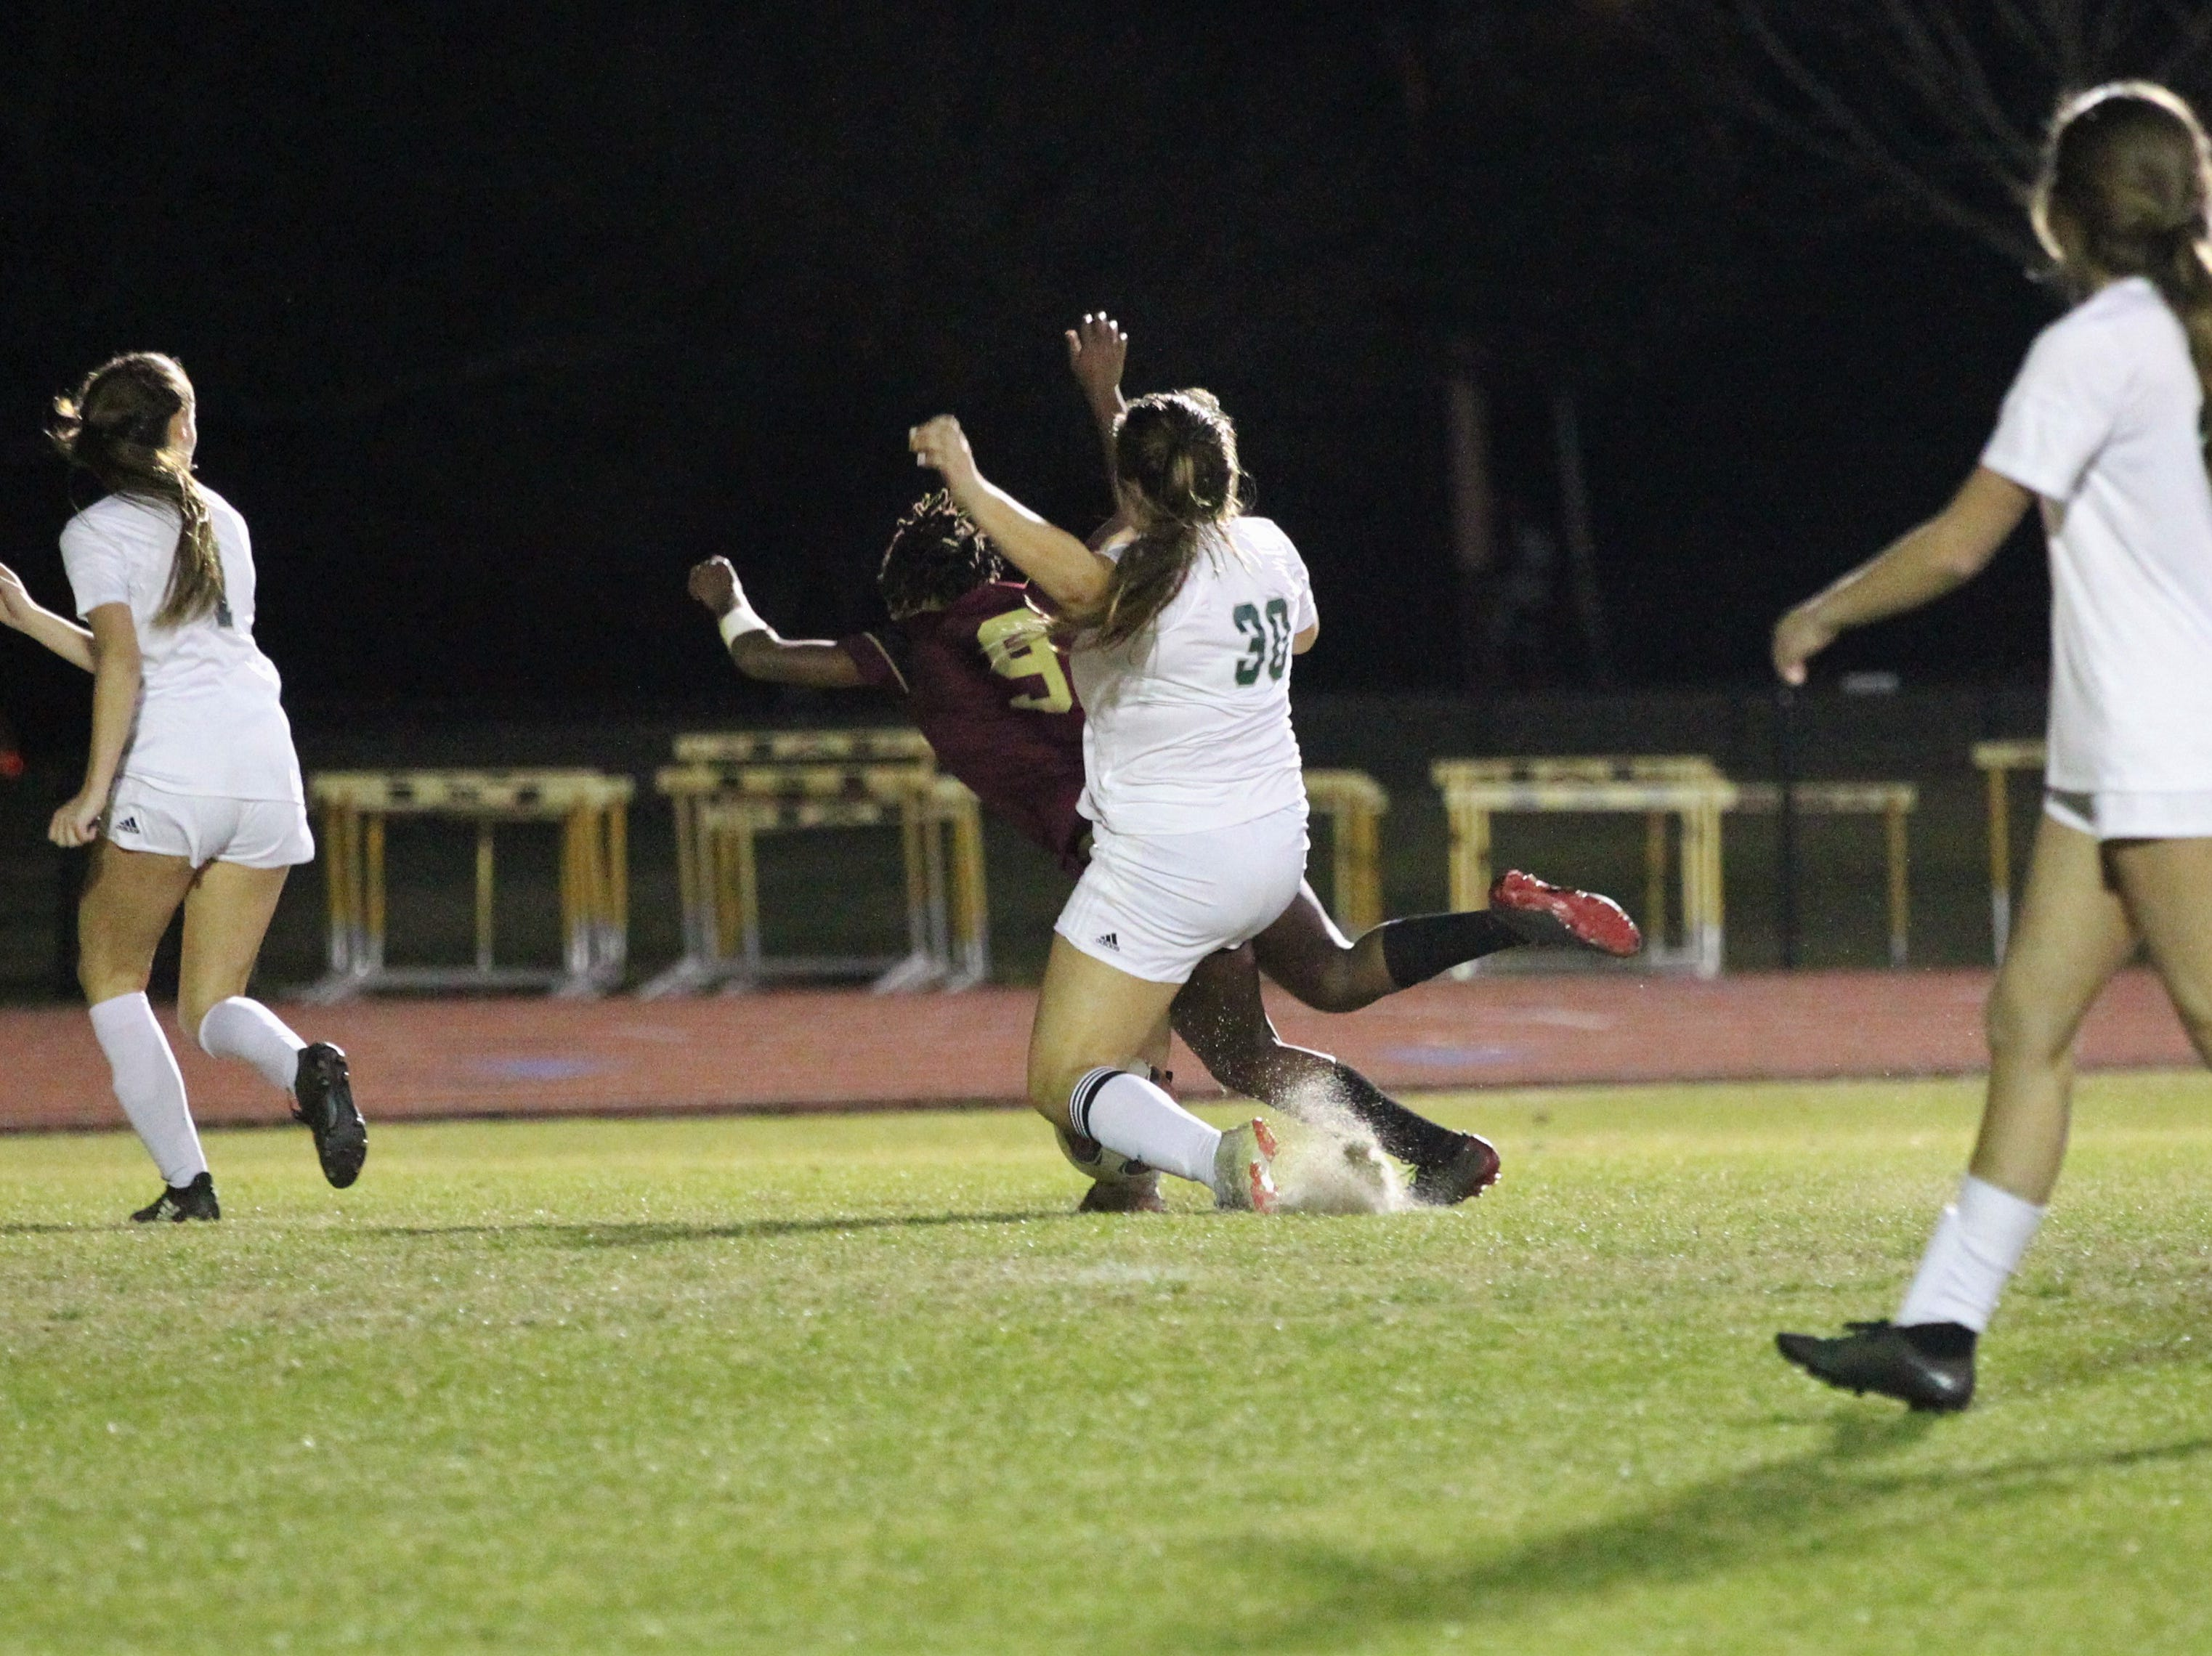 Florida High's Janae Scott gets pushed from behind in the box, but no foul was called, as South Walton edged the Seminoles 5-4 in a penalty-kick shootout during a Region 1-2A semifinal on Feb. 8, 2019.